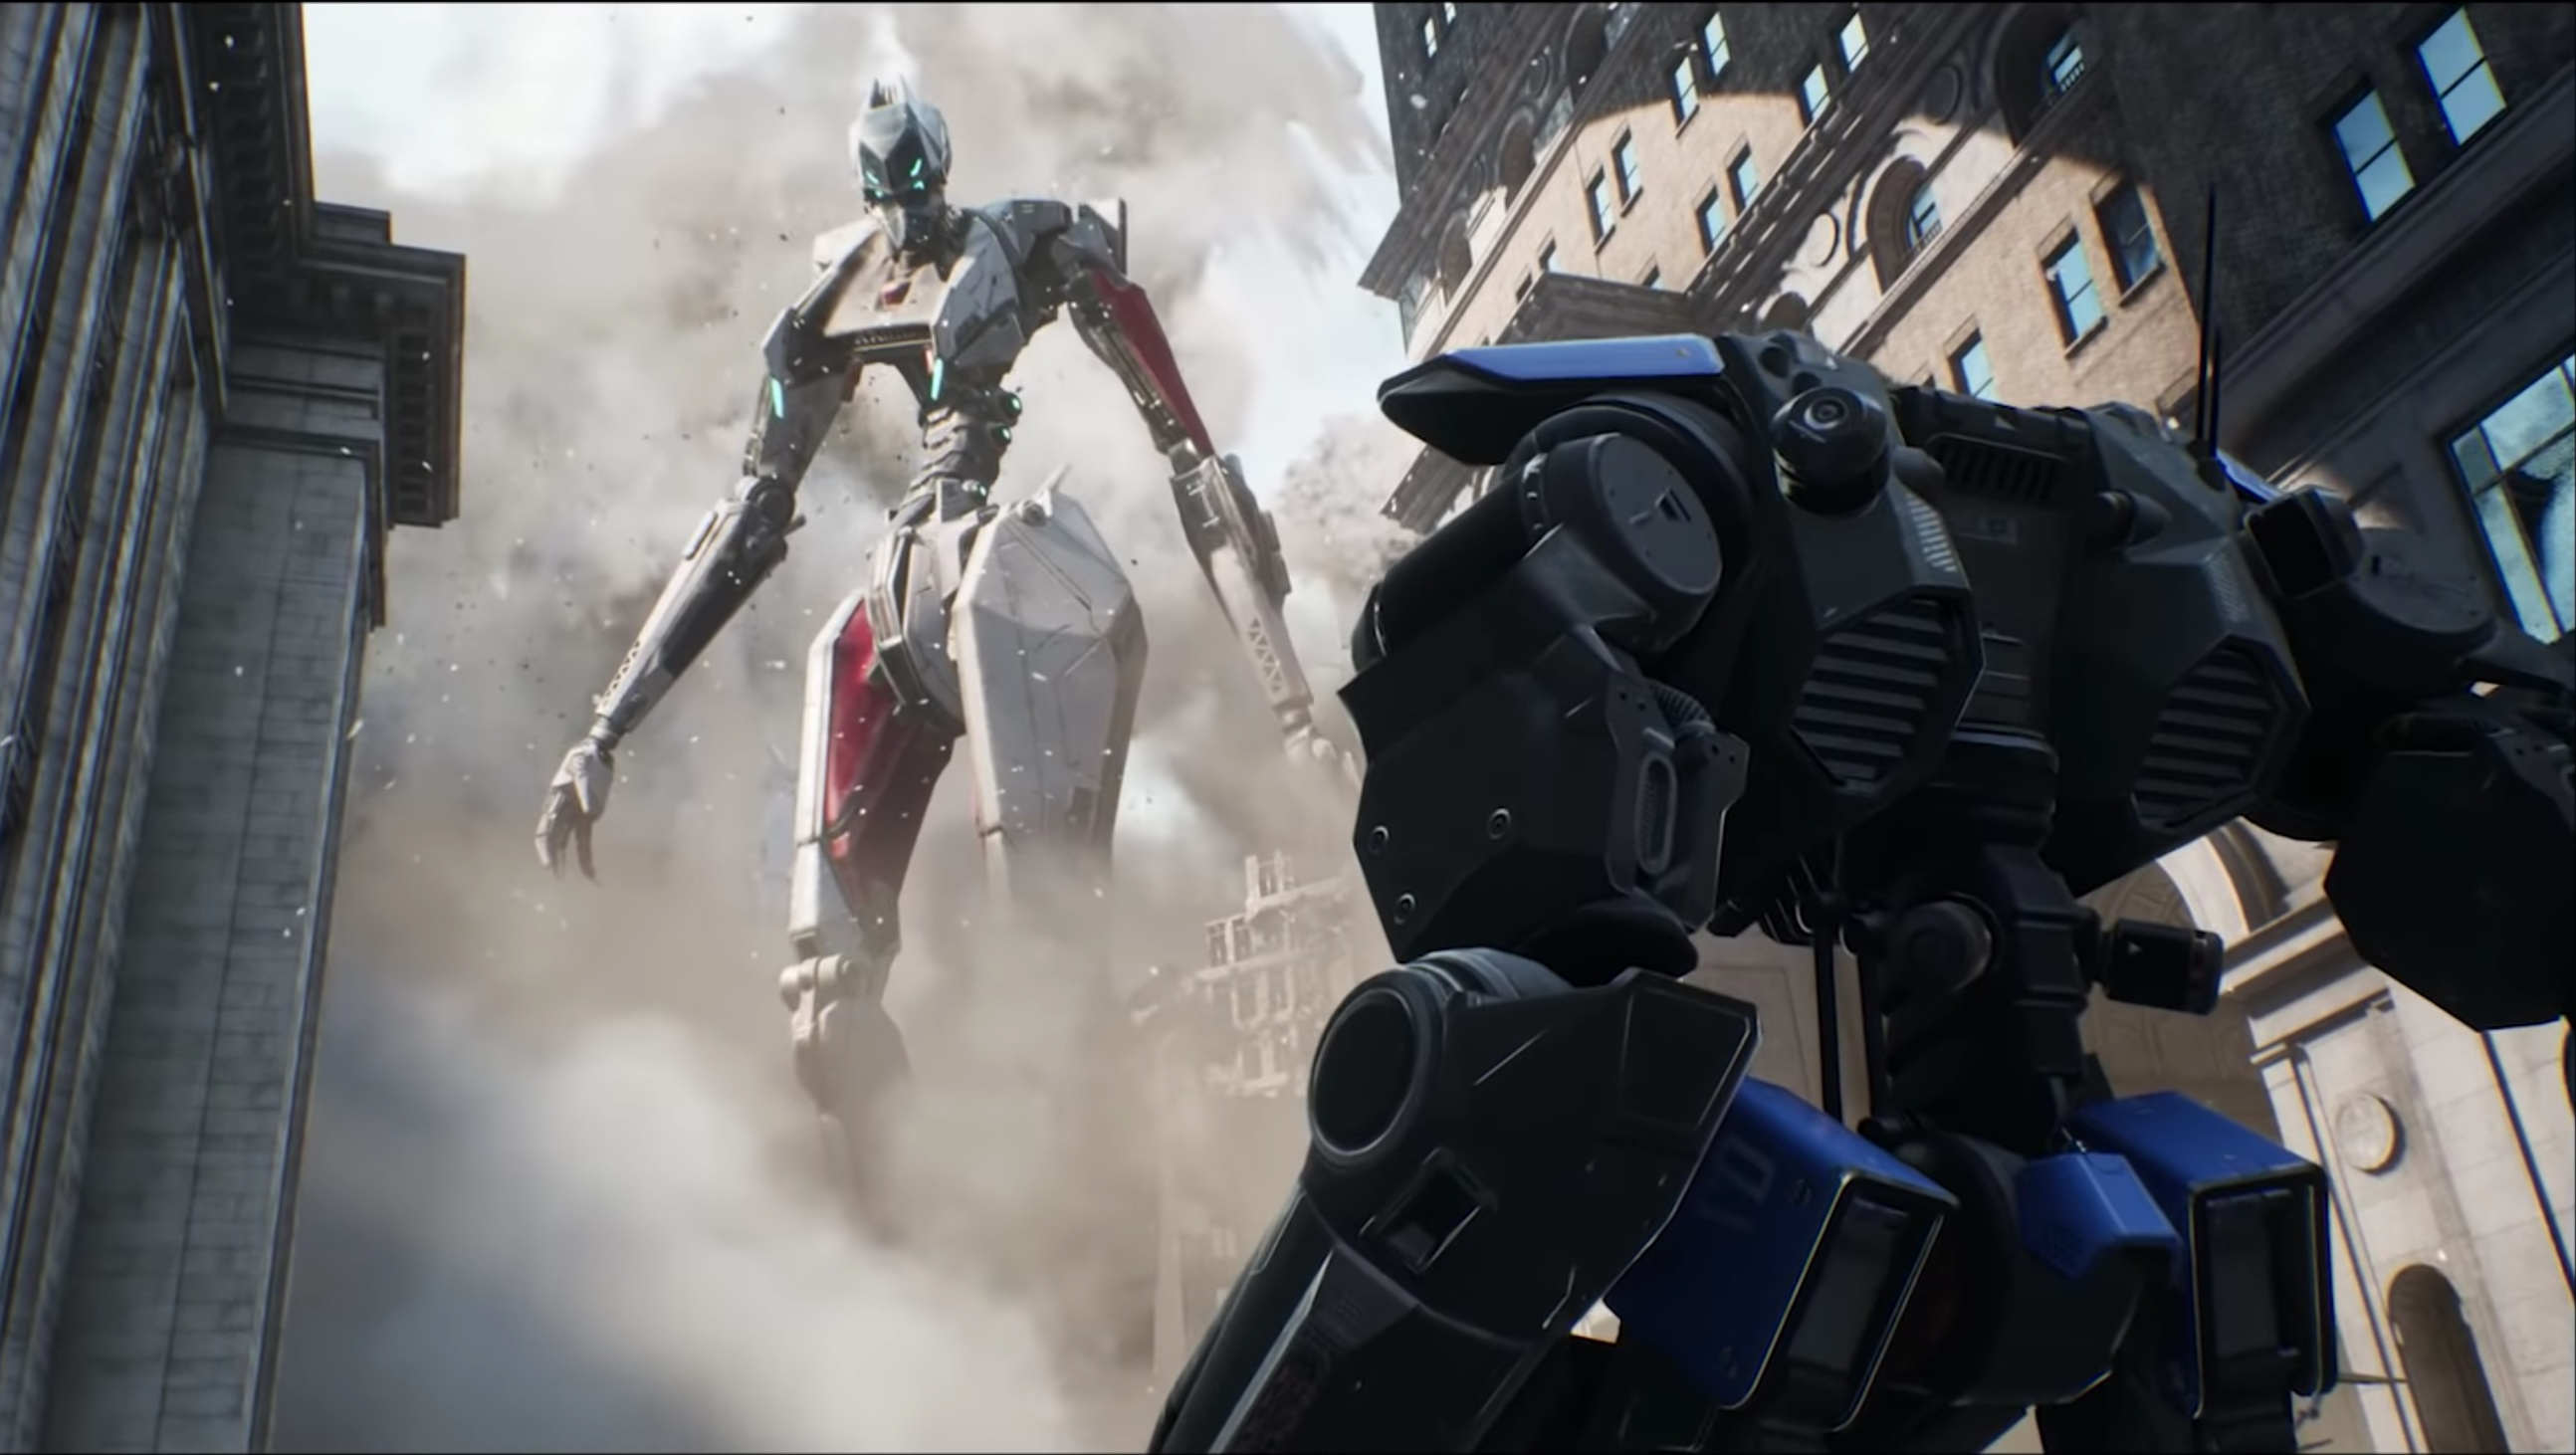 PS5 and Xbox Scarlett: the Unreal Engine demo shows what's